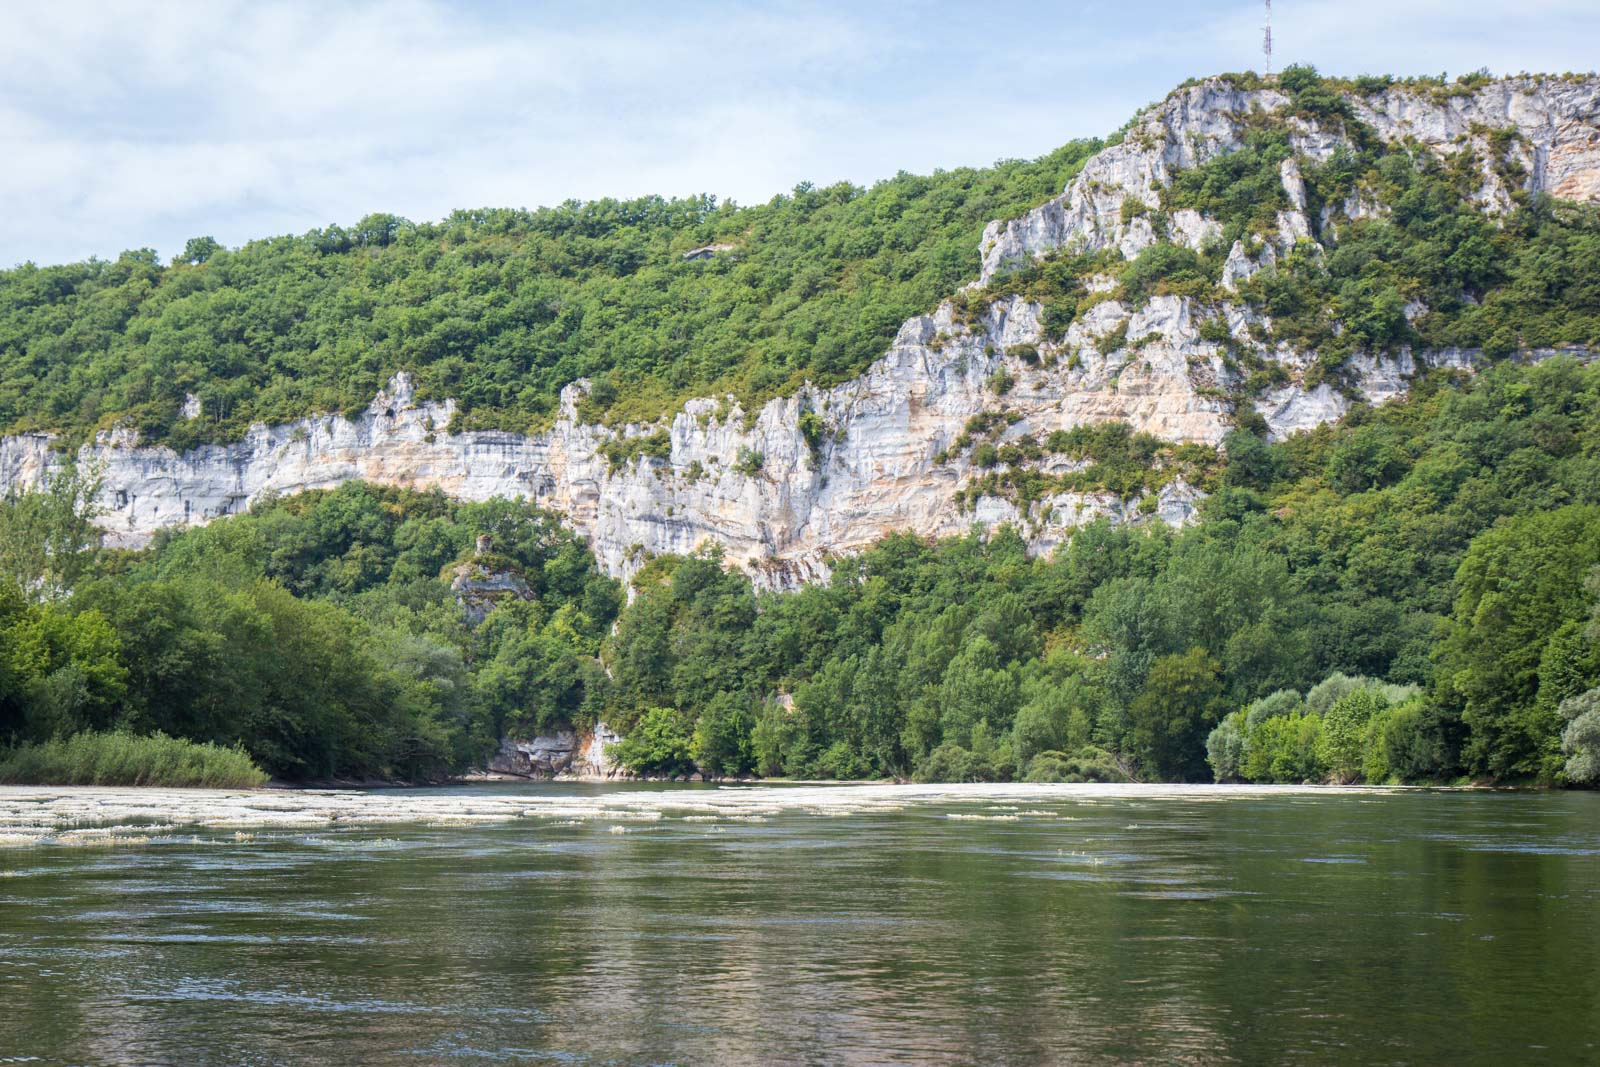 Kayaking on the Dordogne, France